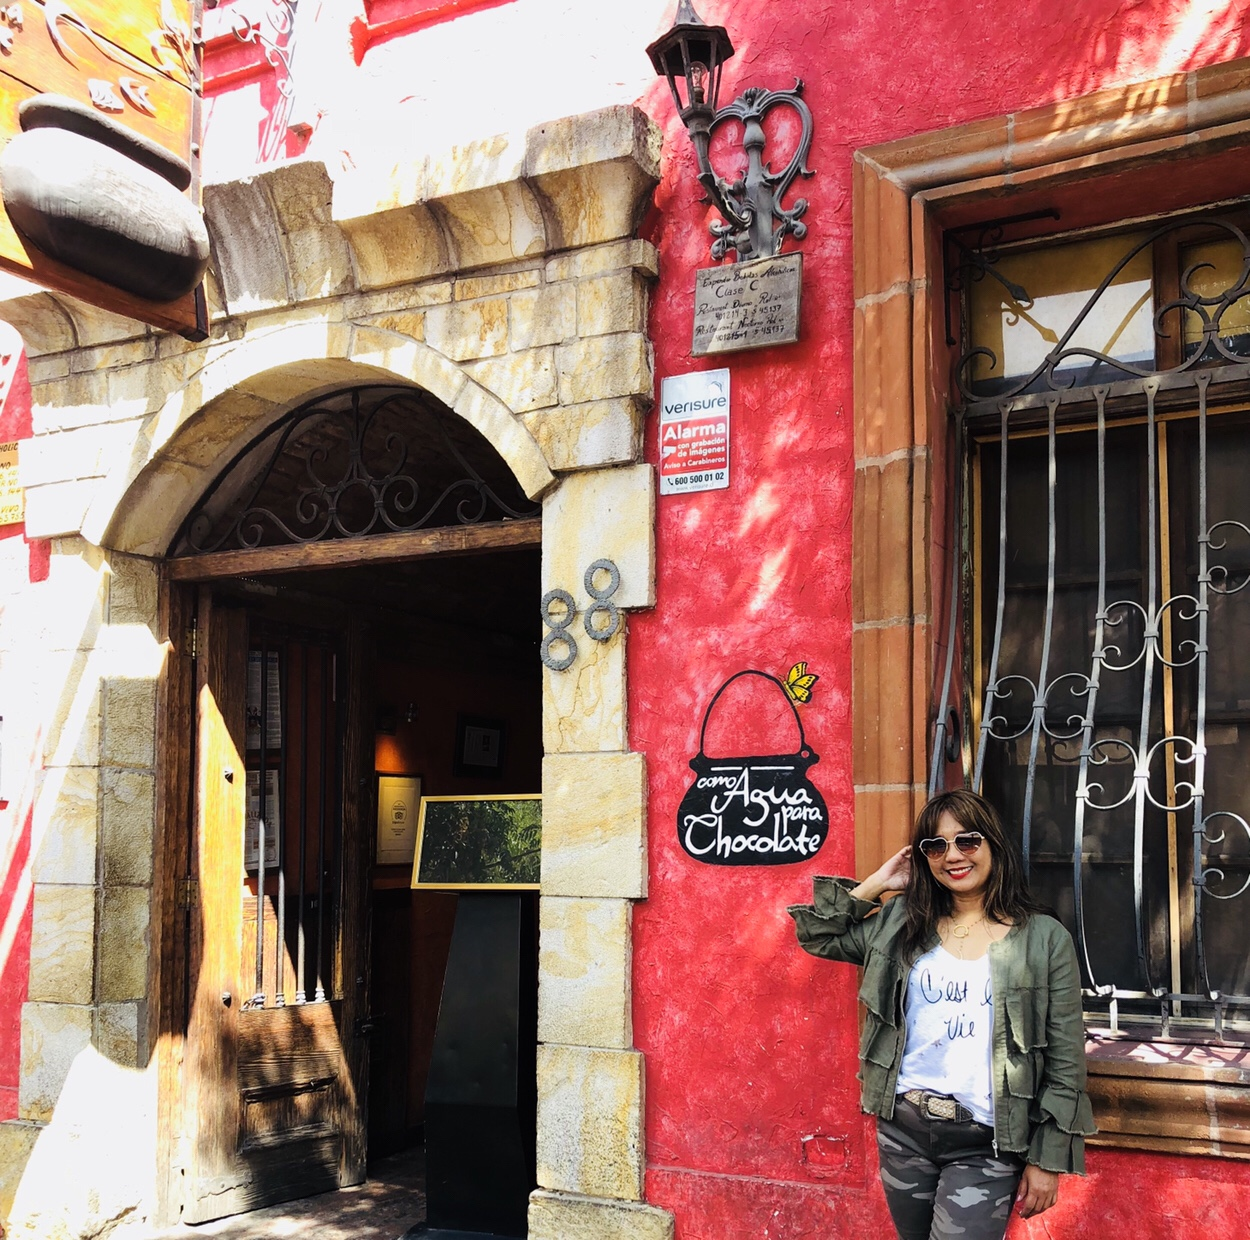 What I learned about myself while in Santiago, Chile